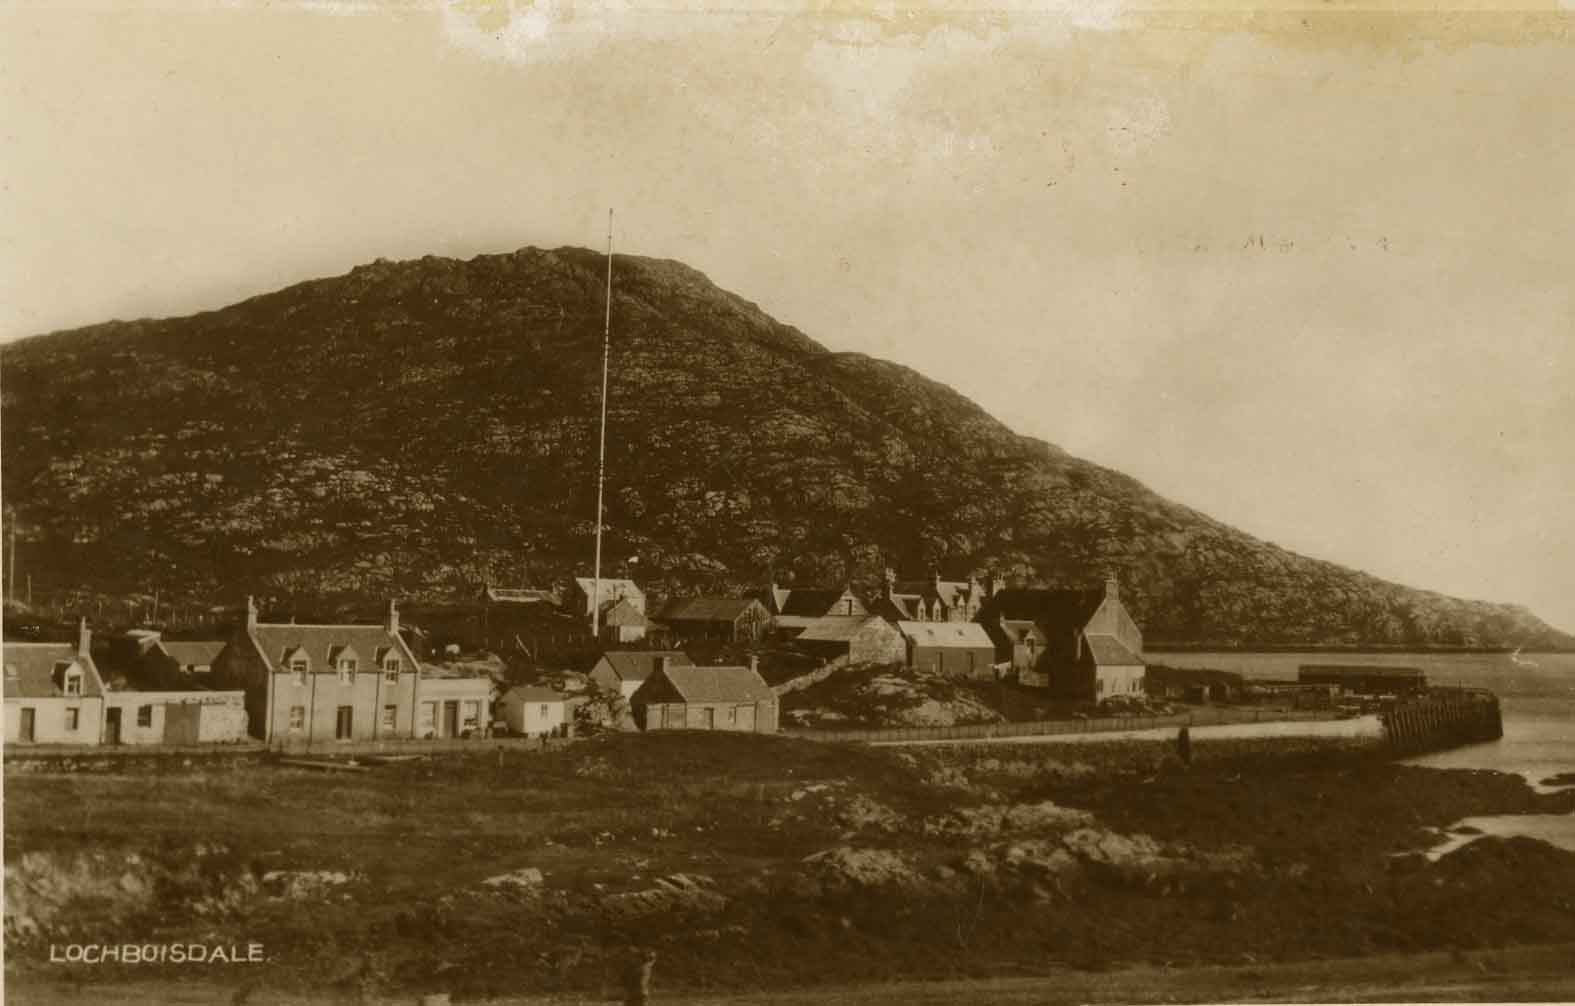 Lochboisadle featuring the Marconi pole